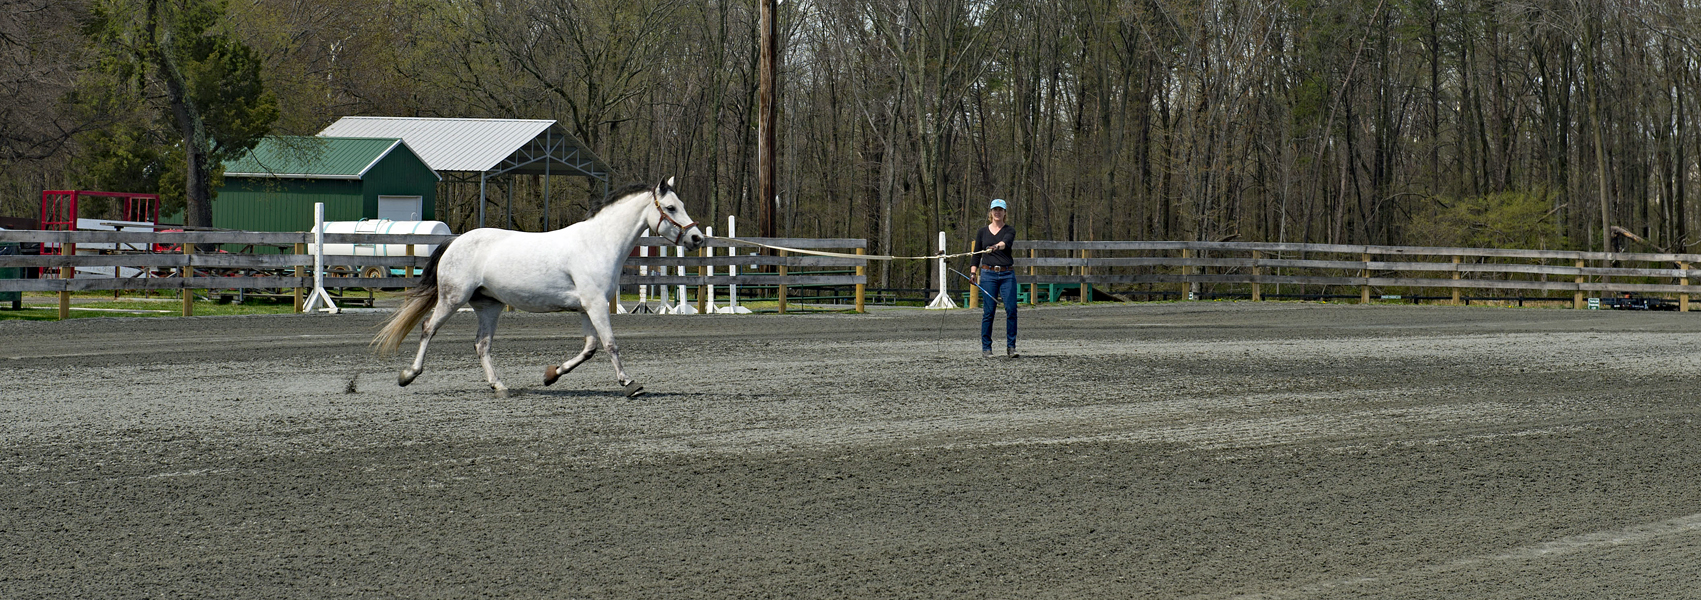 Trainer guides horse in outdoor ring